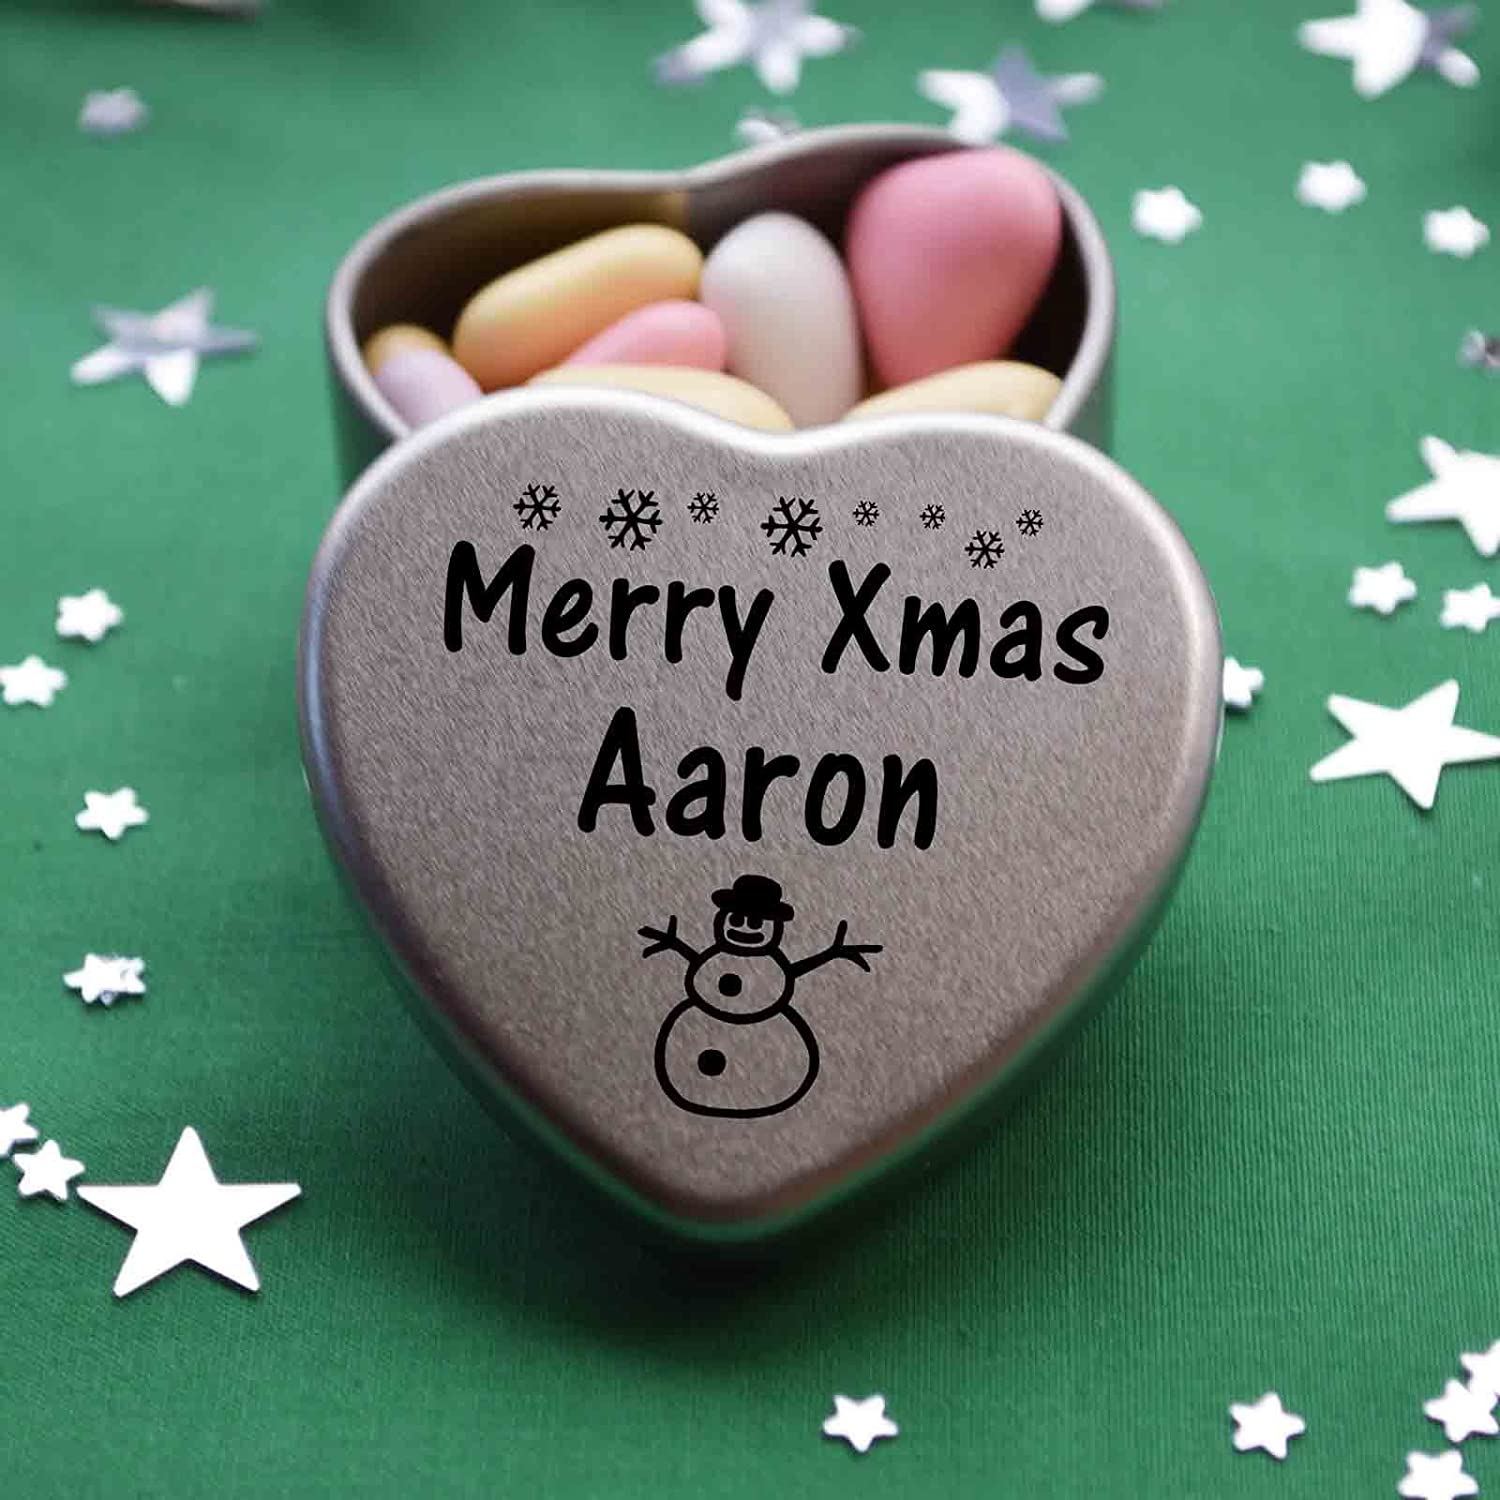 Merry Xmas Aaron Mini Heart Gift Tin with Chocolates Fits Beautifully in the palm of your hand. Great Christmas Present for Aaron Makes the perfect Stocking Filler or Card alternative. Tin Dimensions 45mmx45mmx20mm. Three designs Available, Father Christm